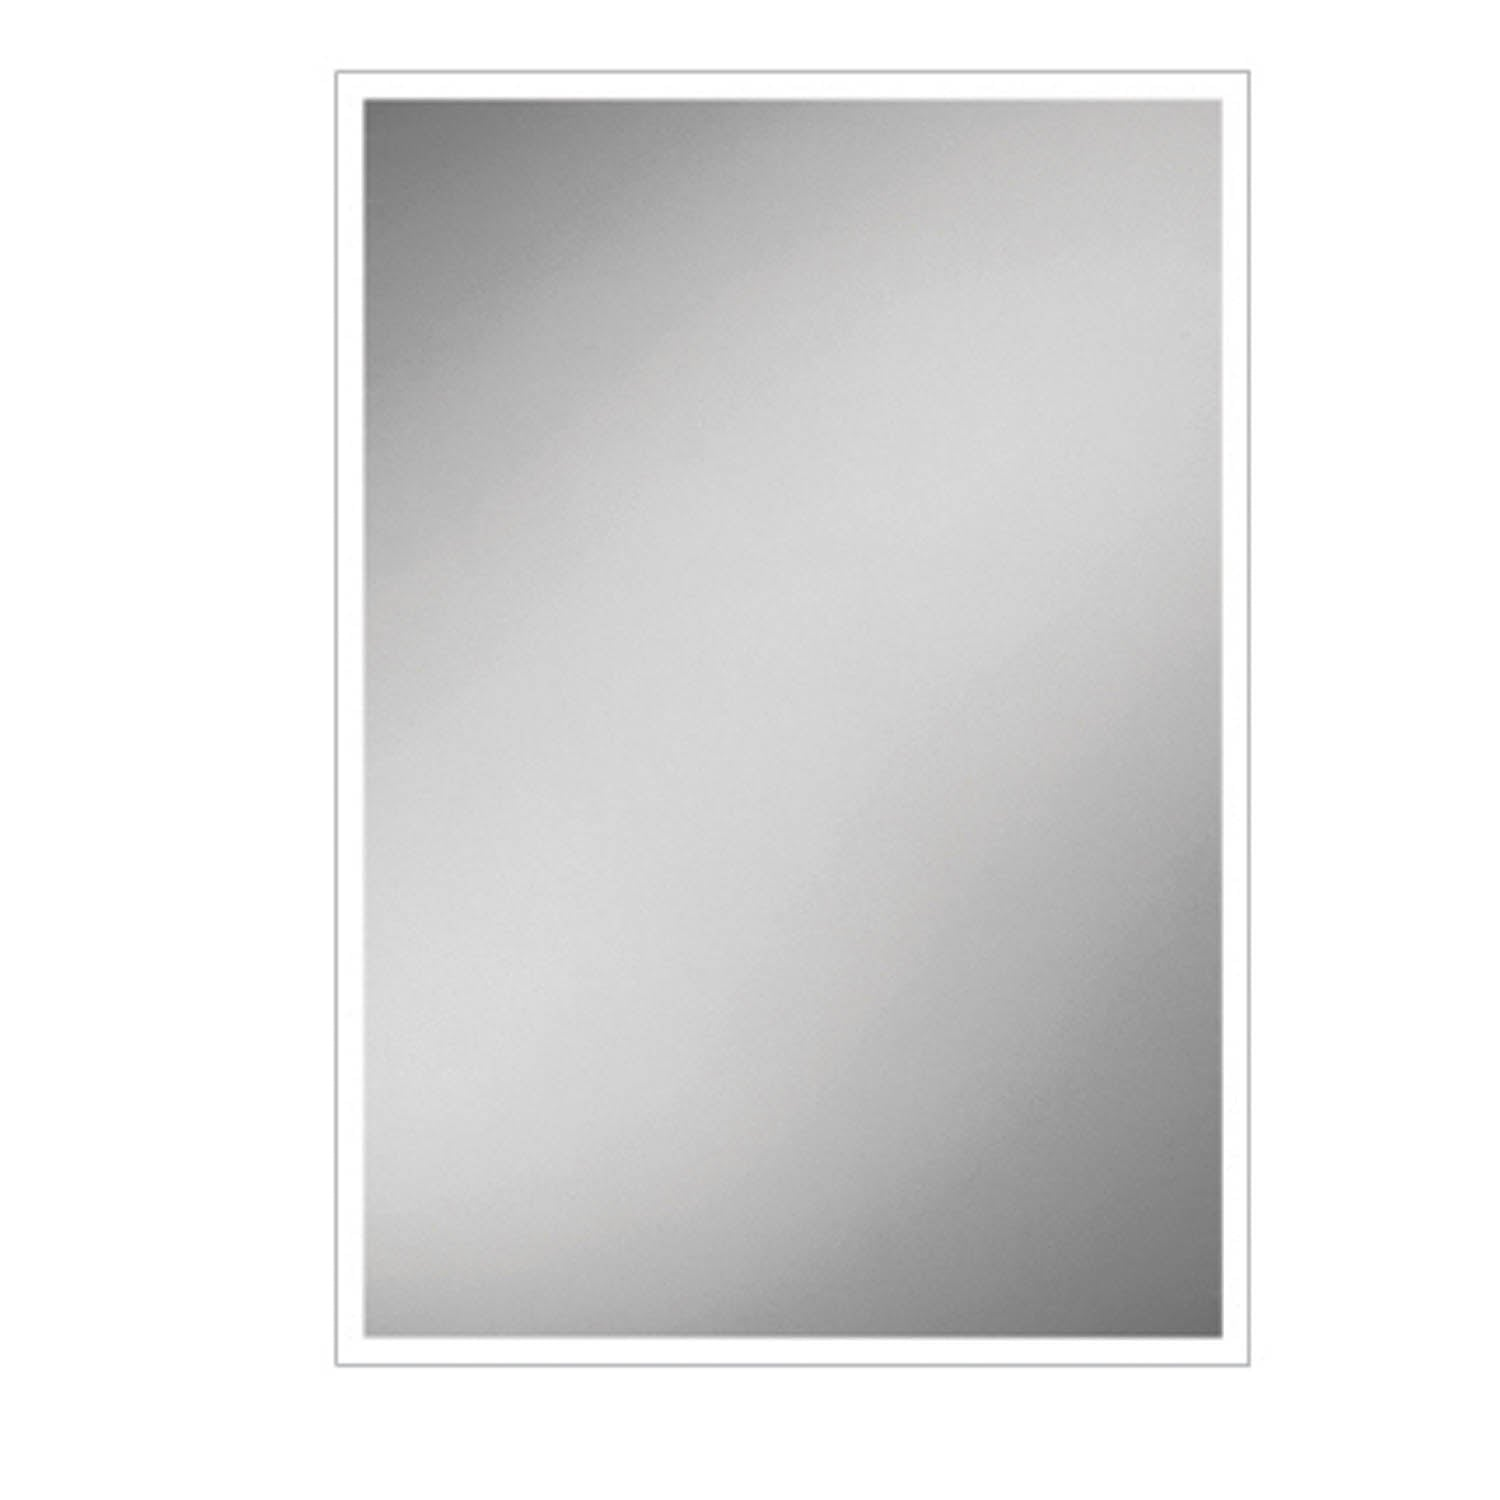 900x600mm Front Lit LED Light Mirror on a white background